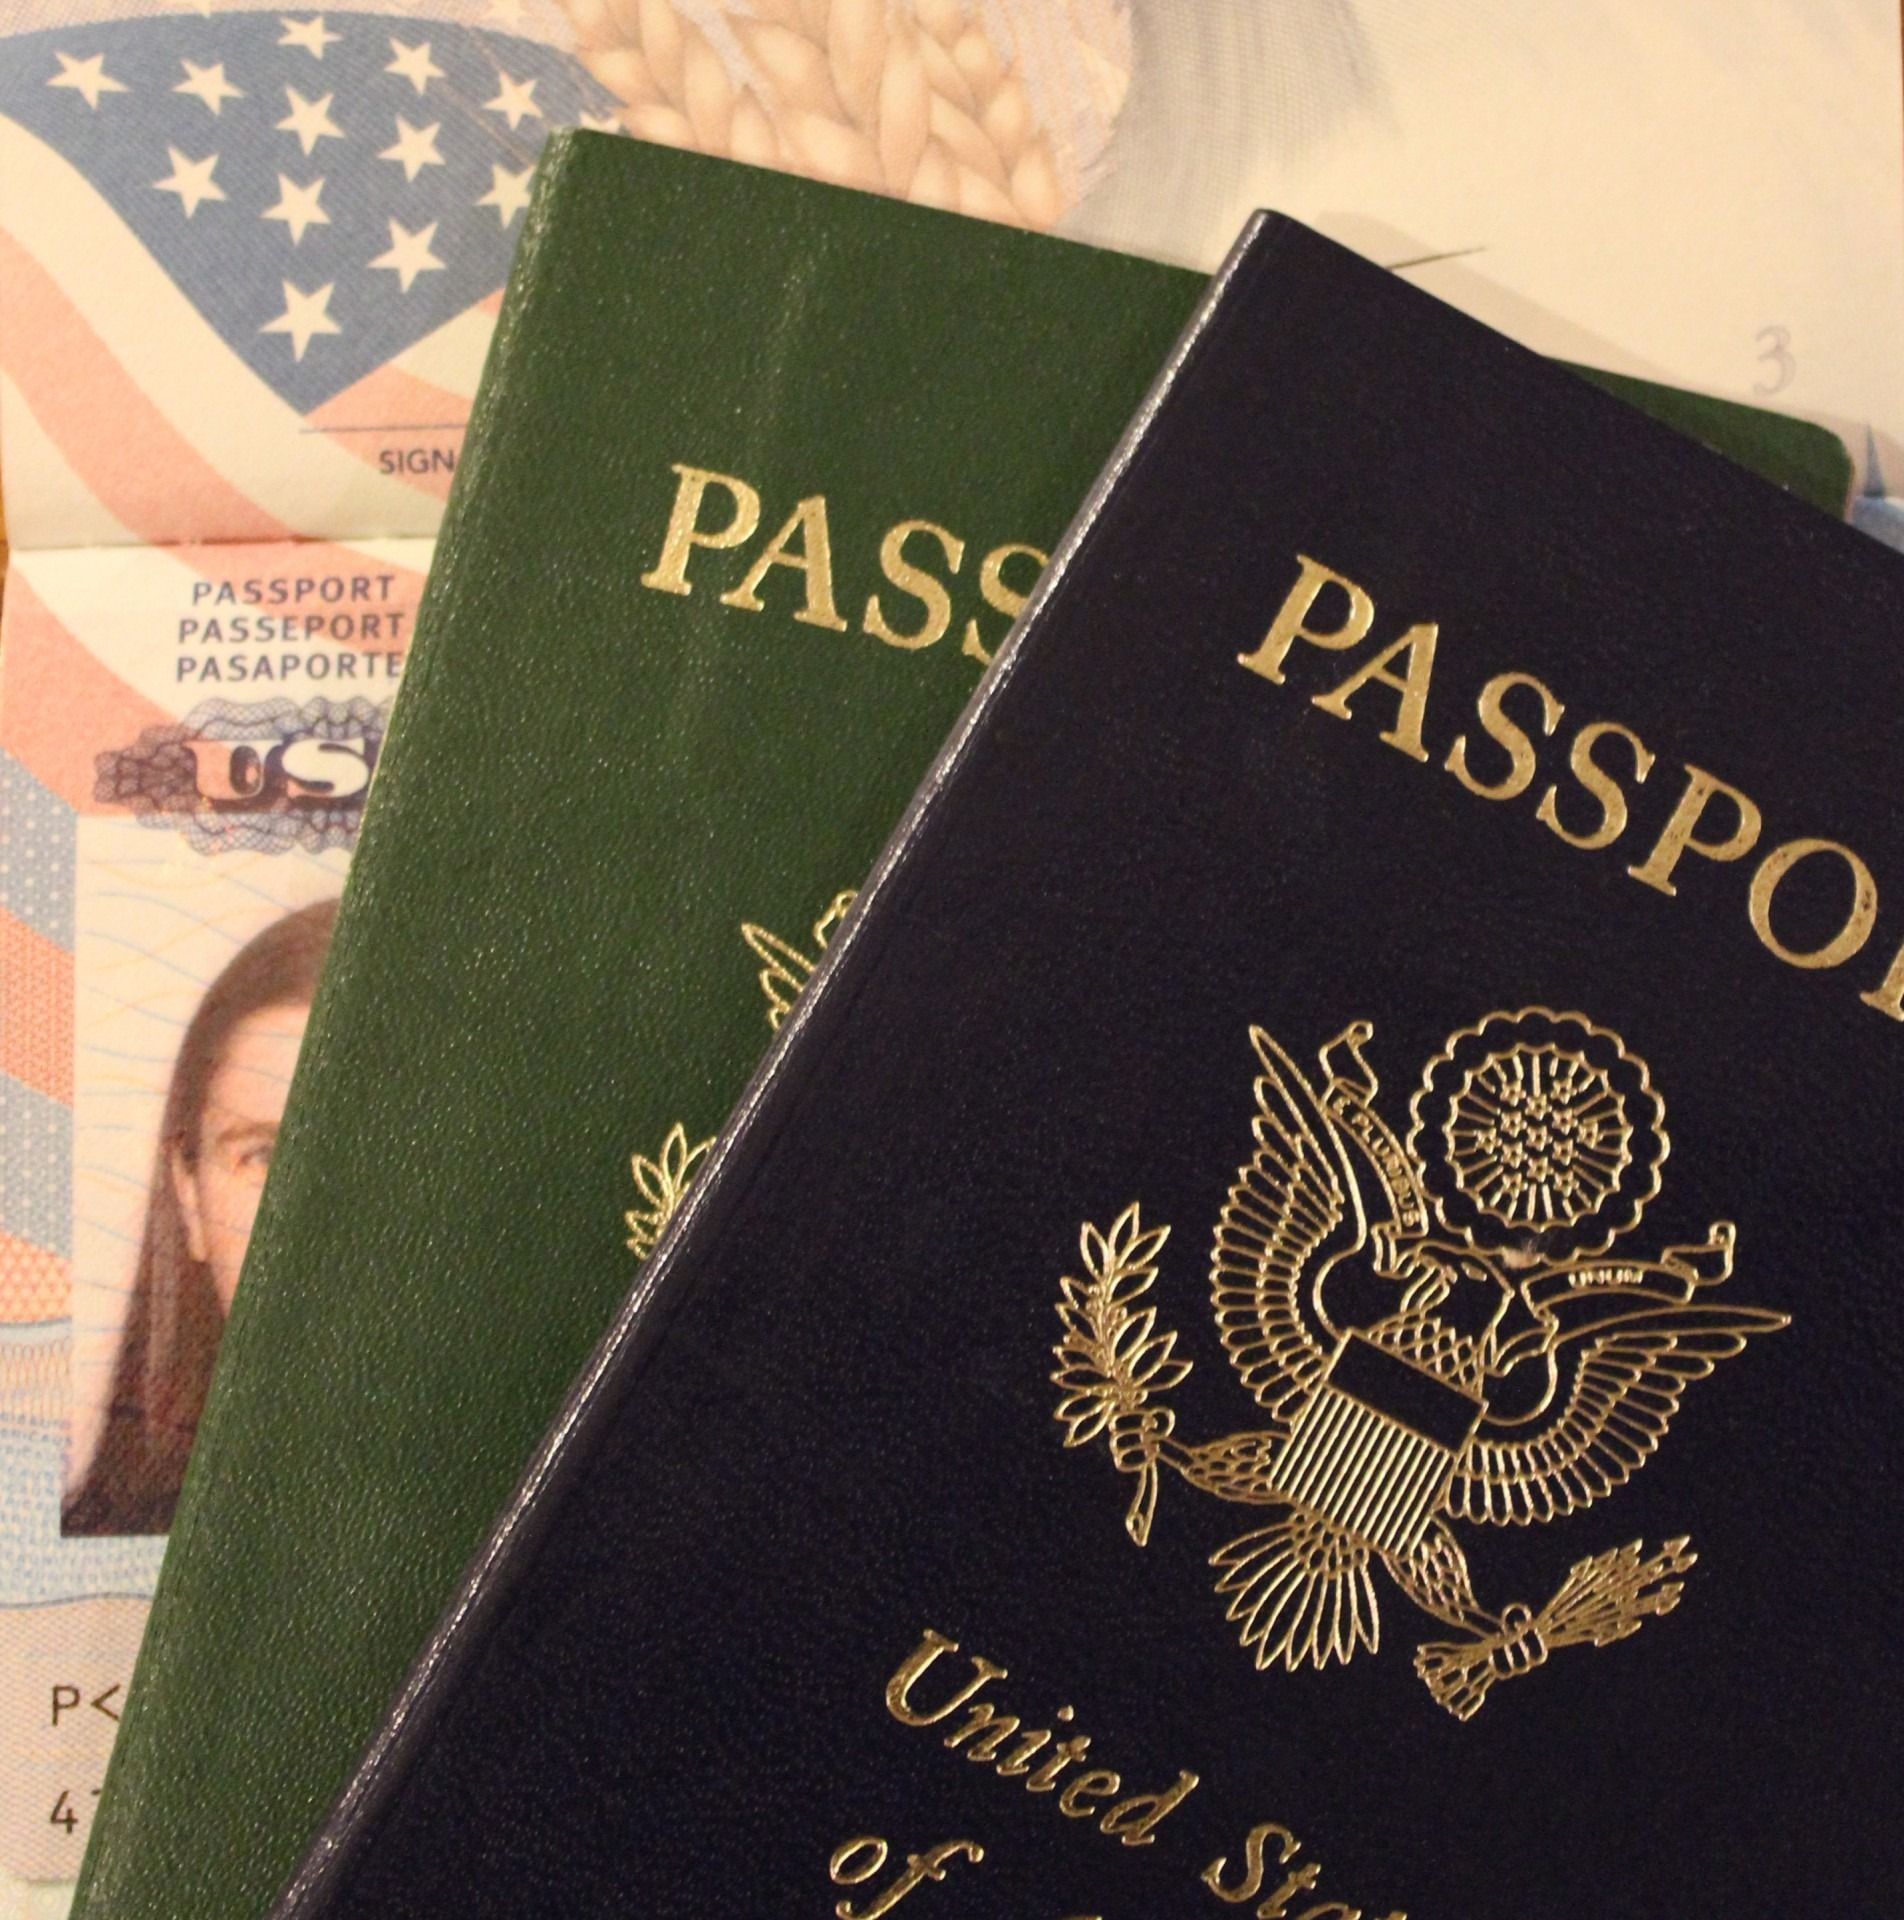 How to get a biometric passport for adolescents and adults